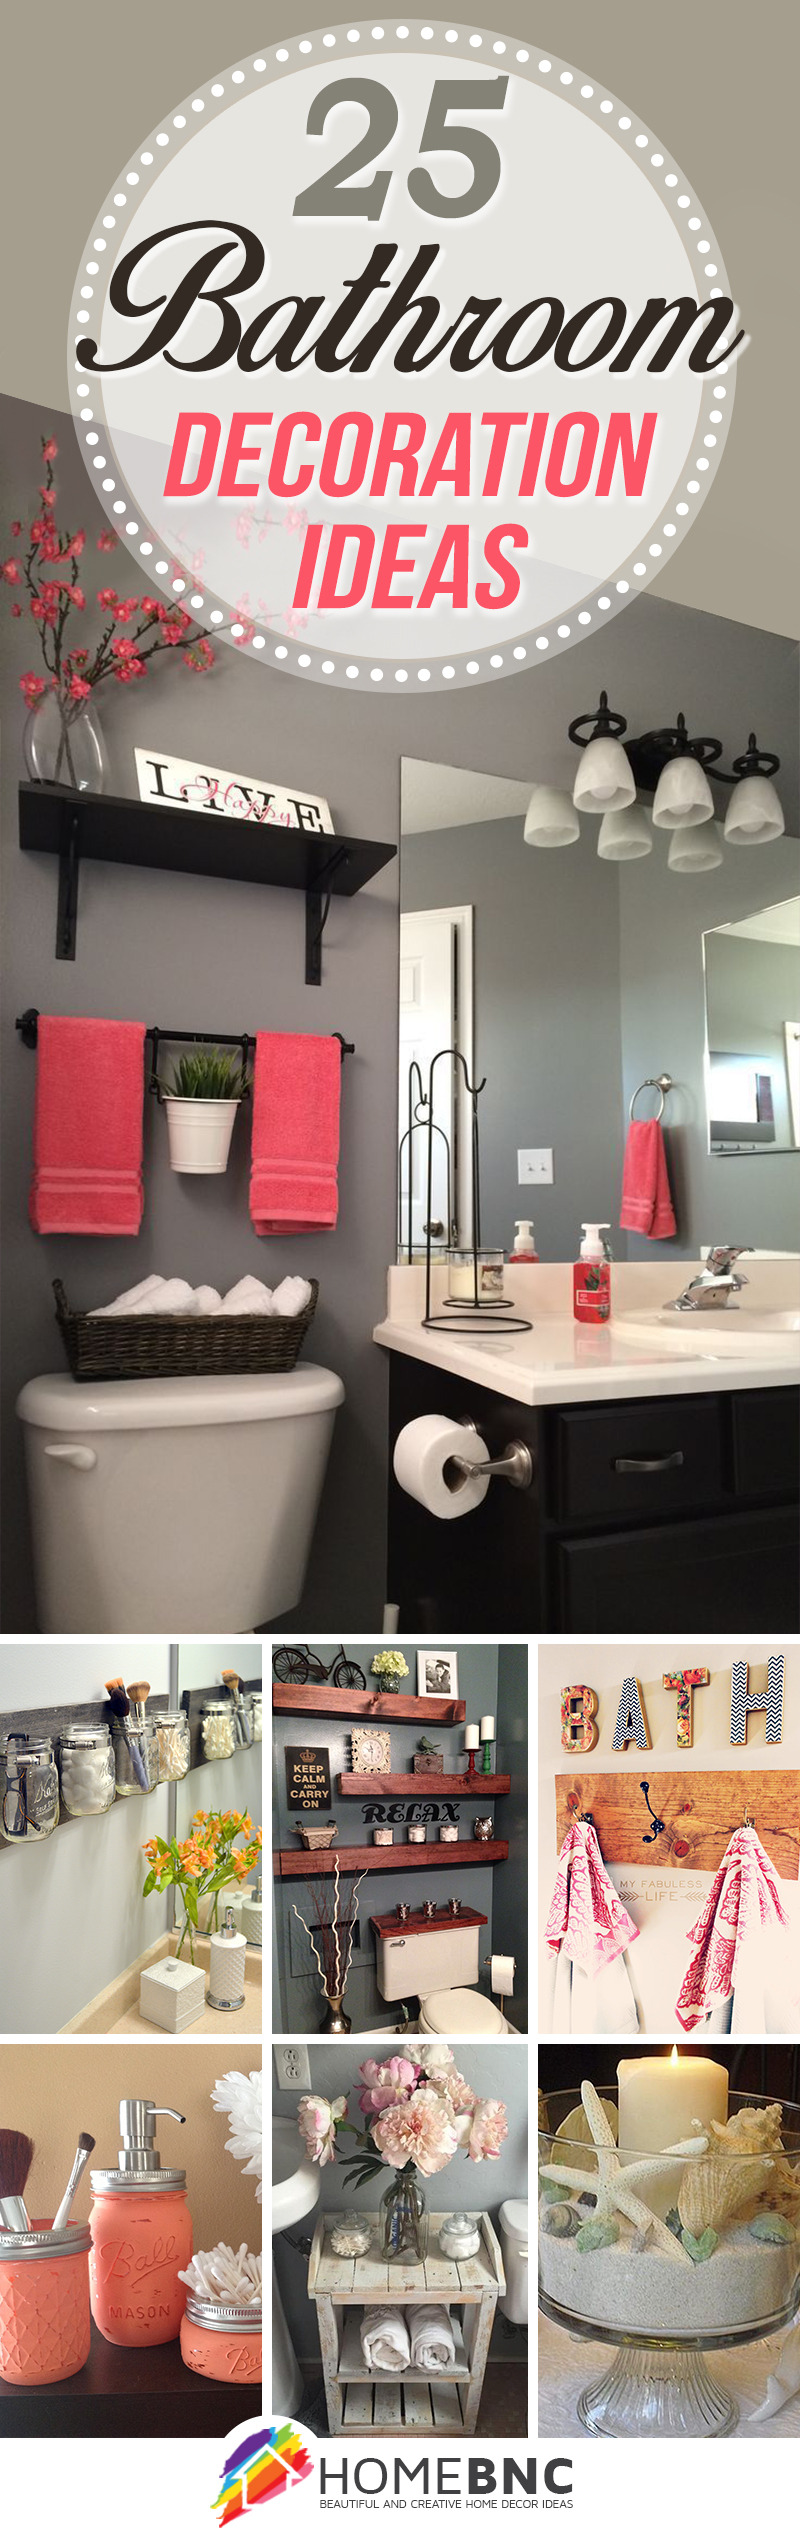 Pictures for Bathroom Decorating Ideas Unique 25 Best Bathroom Decor Ideas and Designs that are Trendy In 2020